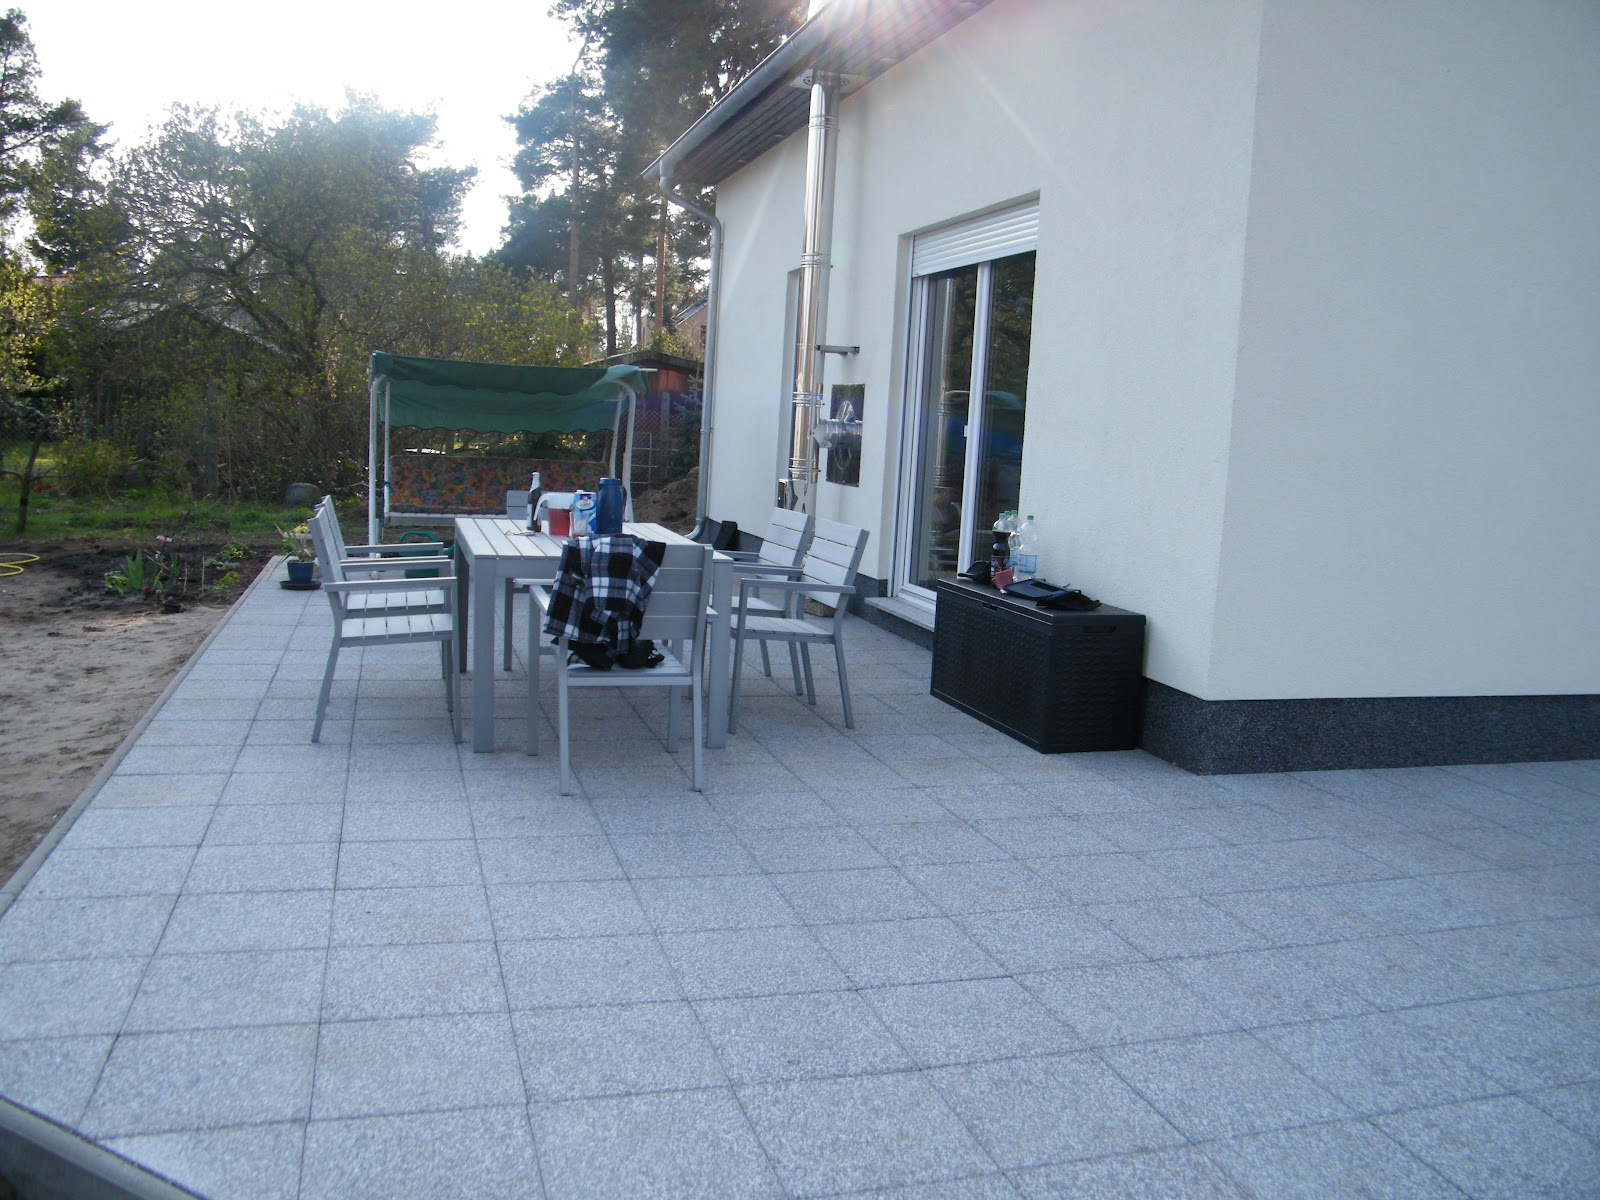 die terrasse ist fertig unser traum vom haus. Black Bedroom Furniture Sets. Home Design Ideas